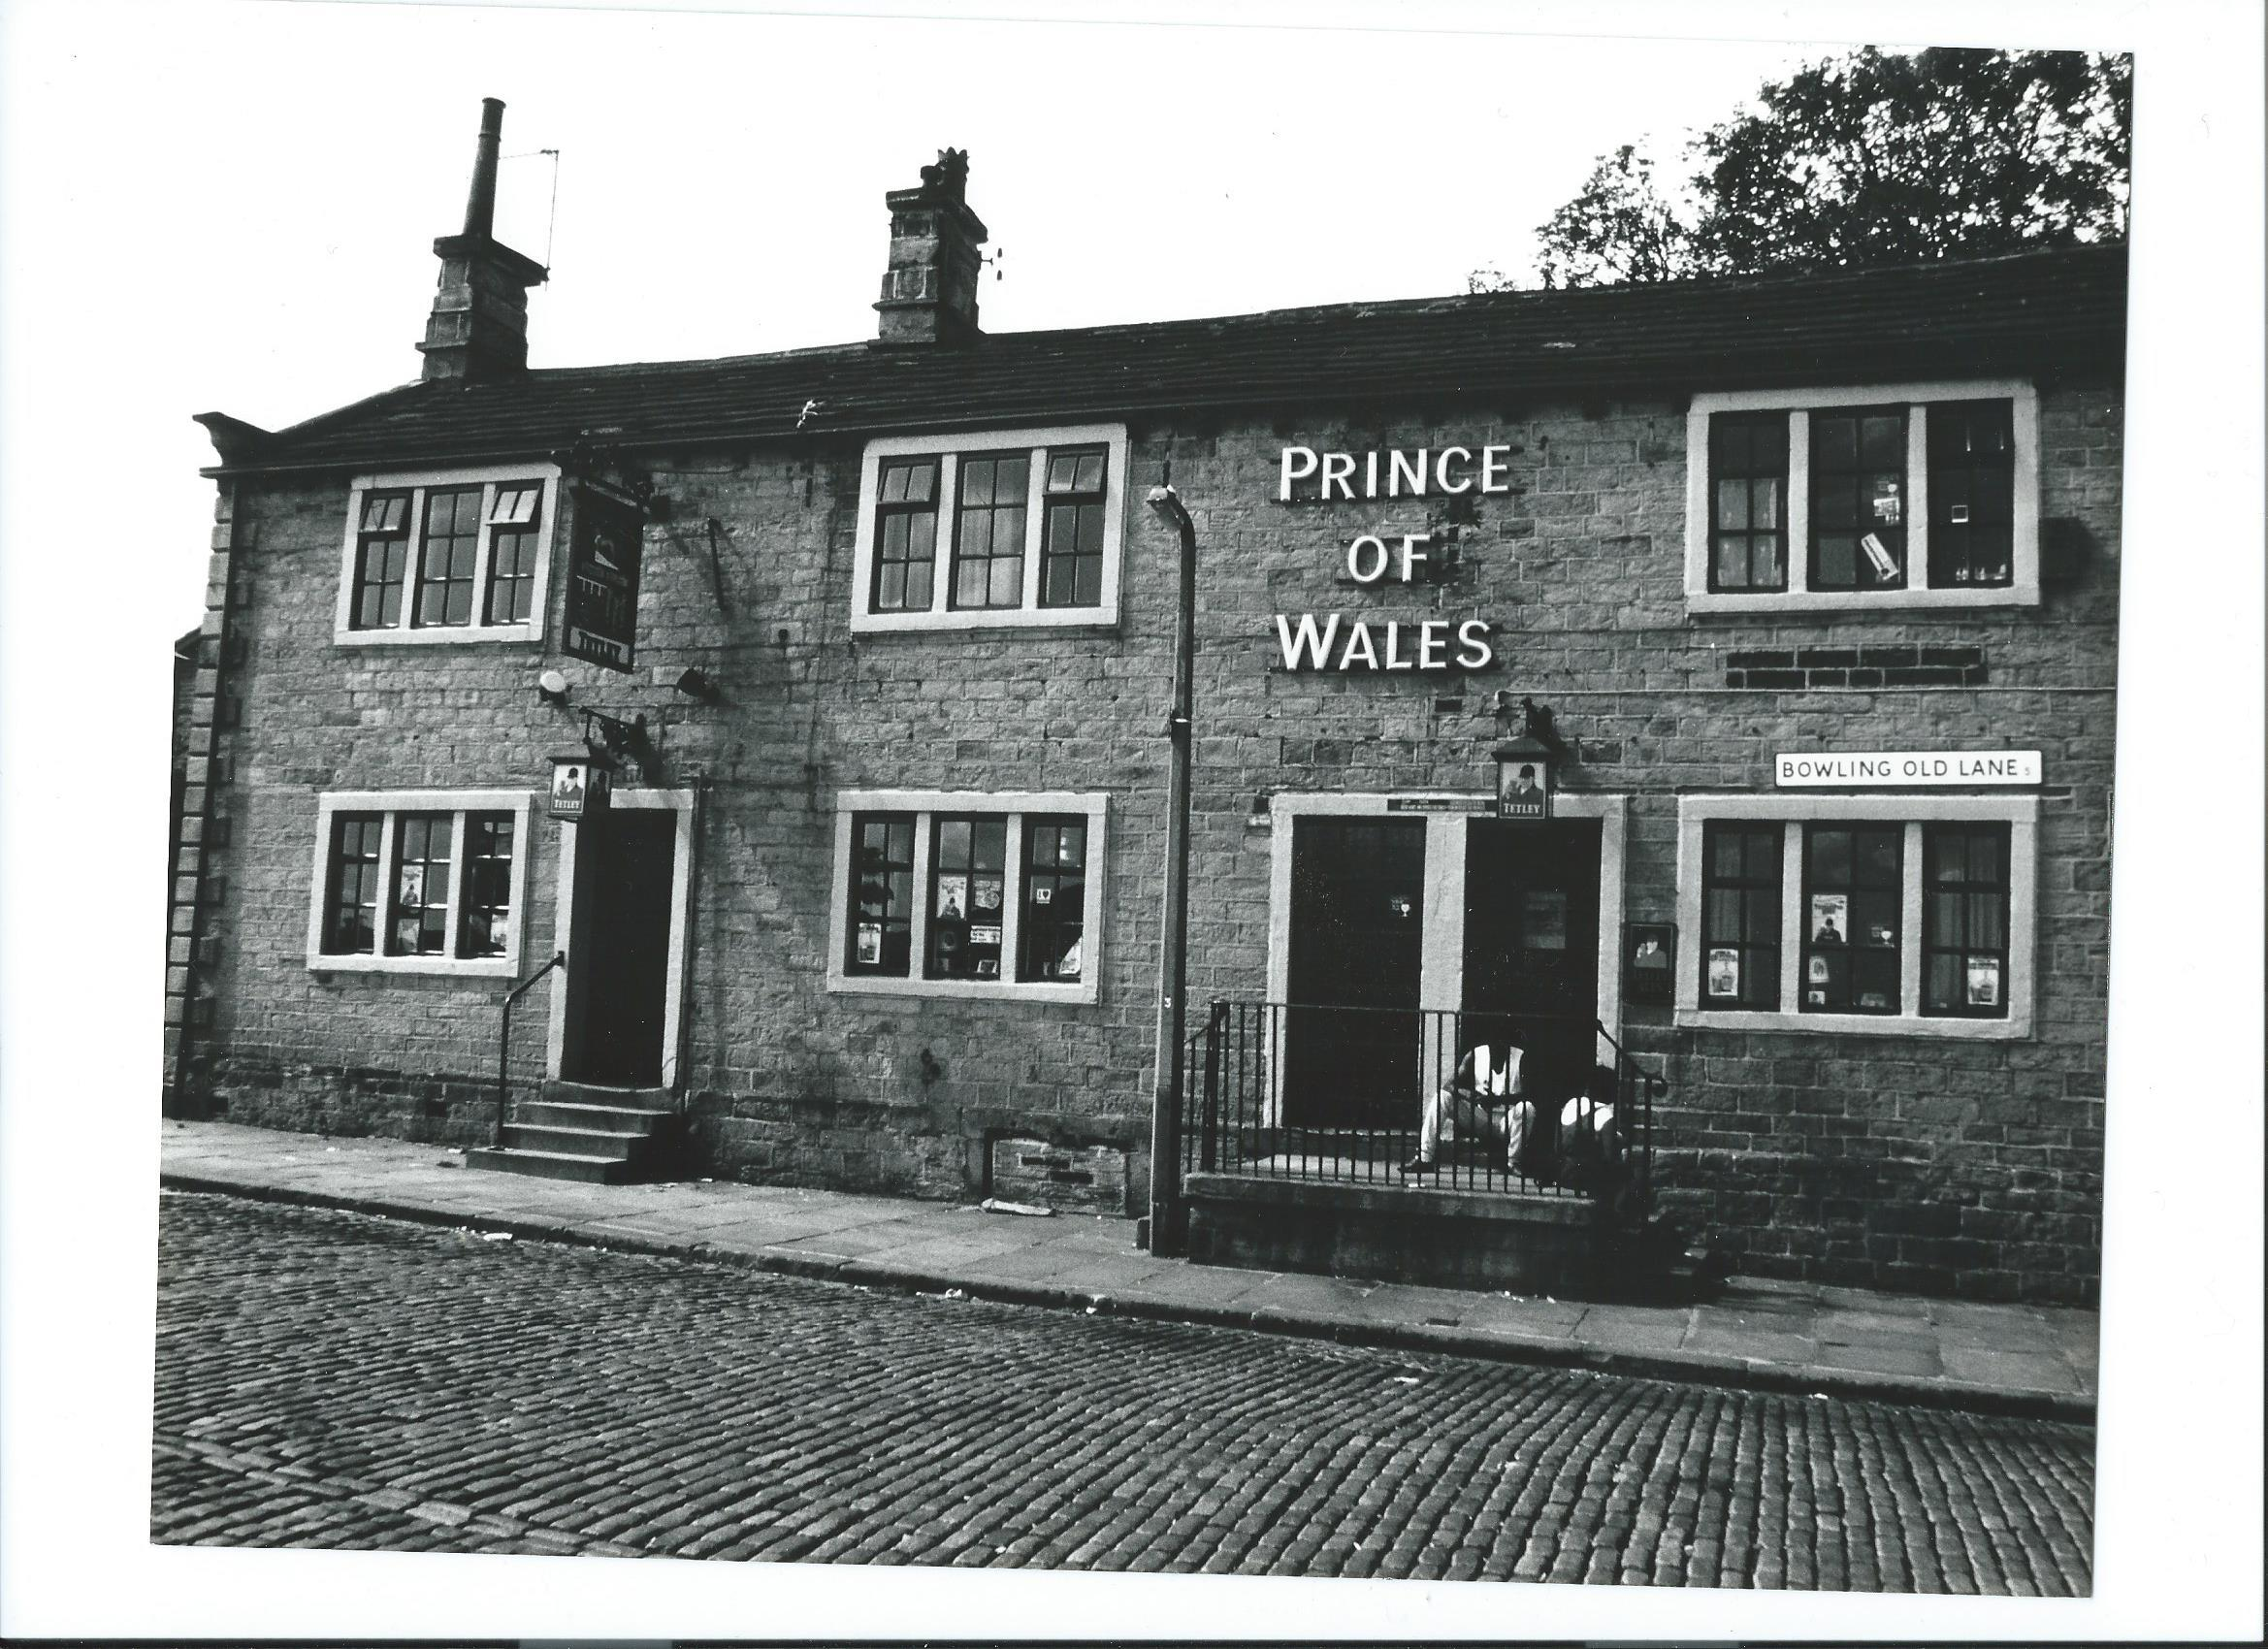 The Prince of Wales pub, taken in the 1980s